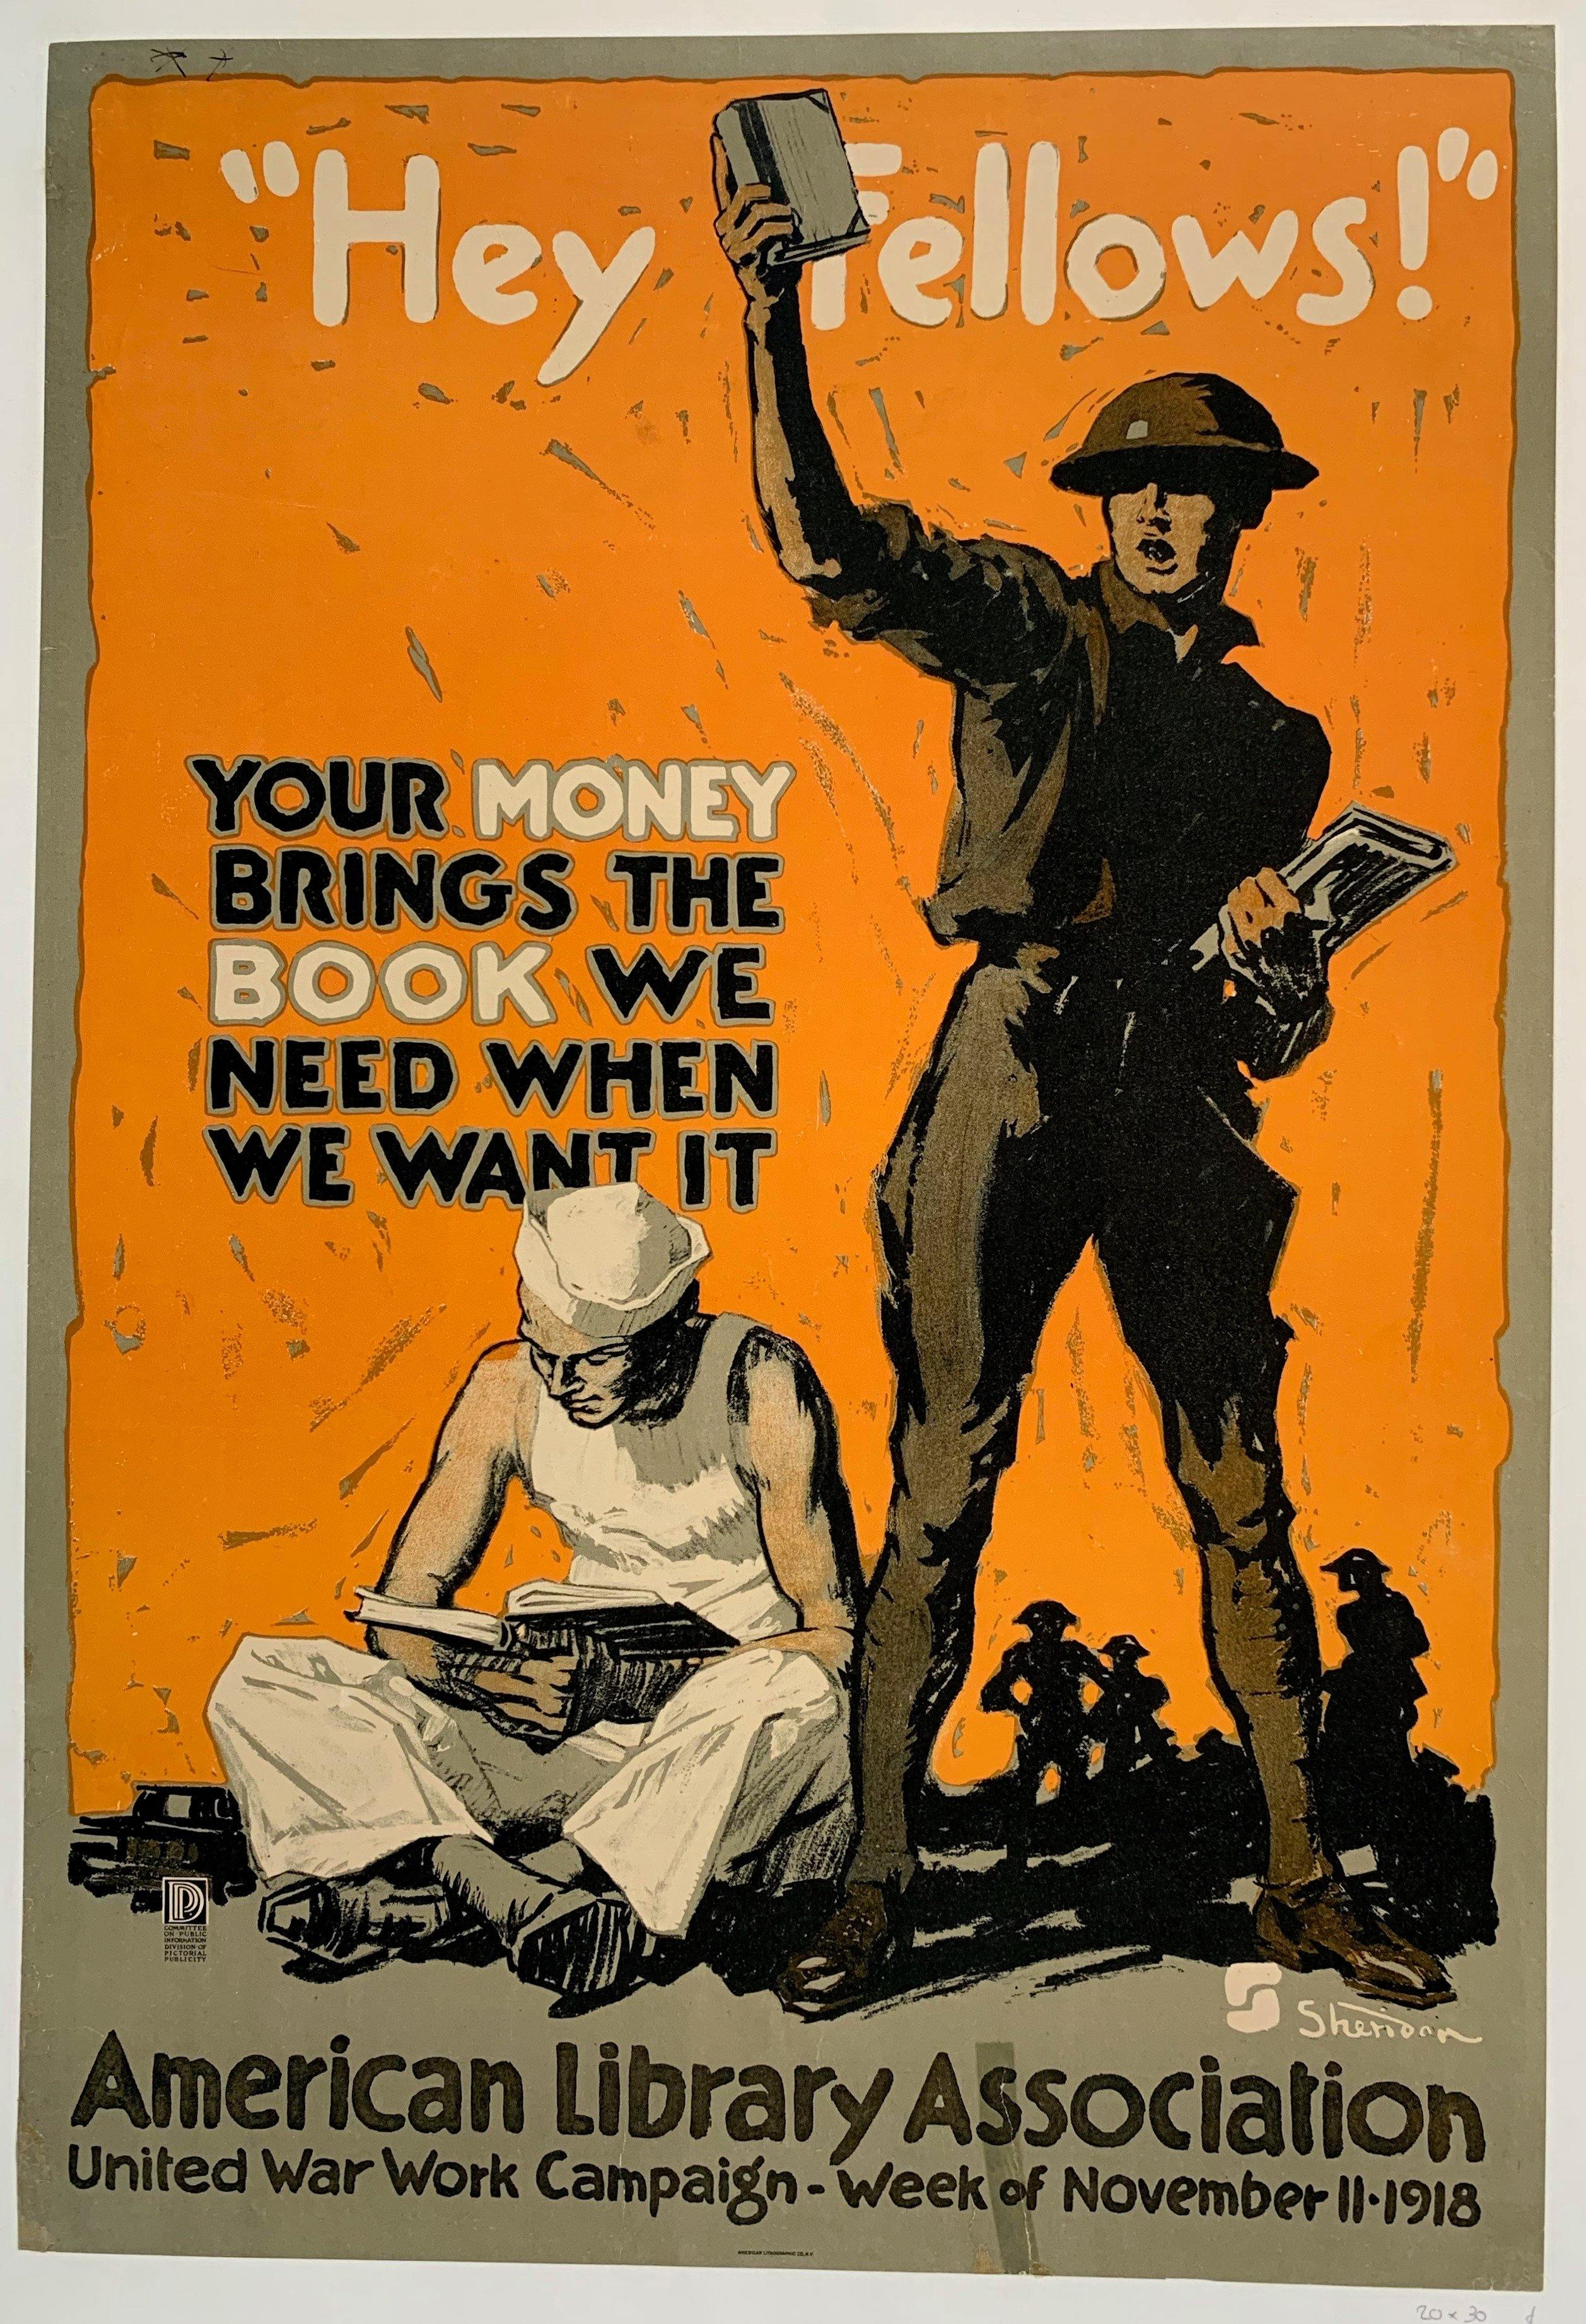 """Hey Fellows!"" Your money brings the book we need when we want it - American Library Association"